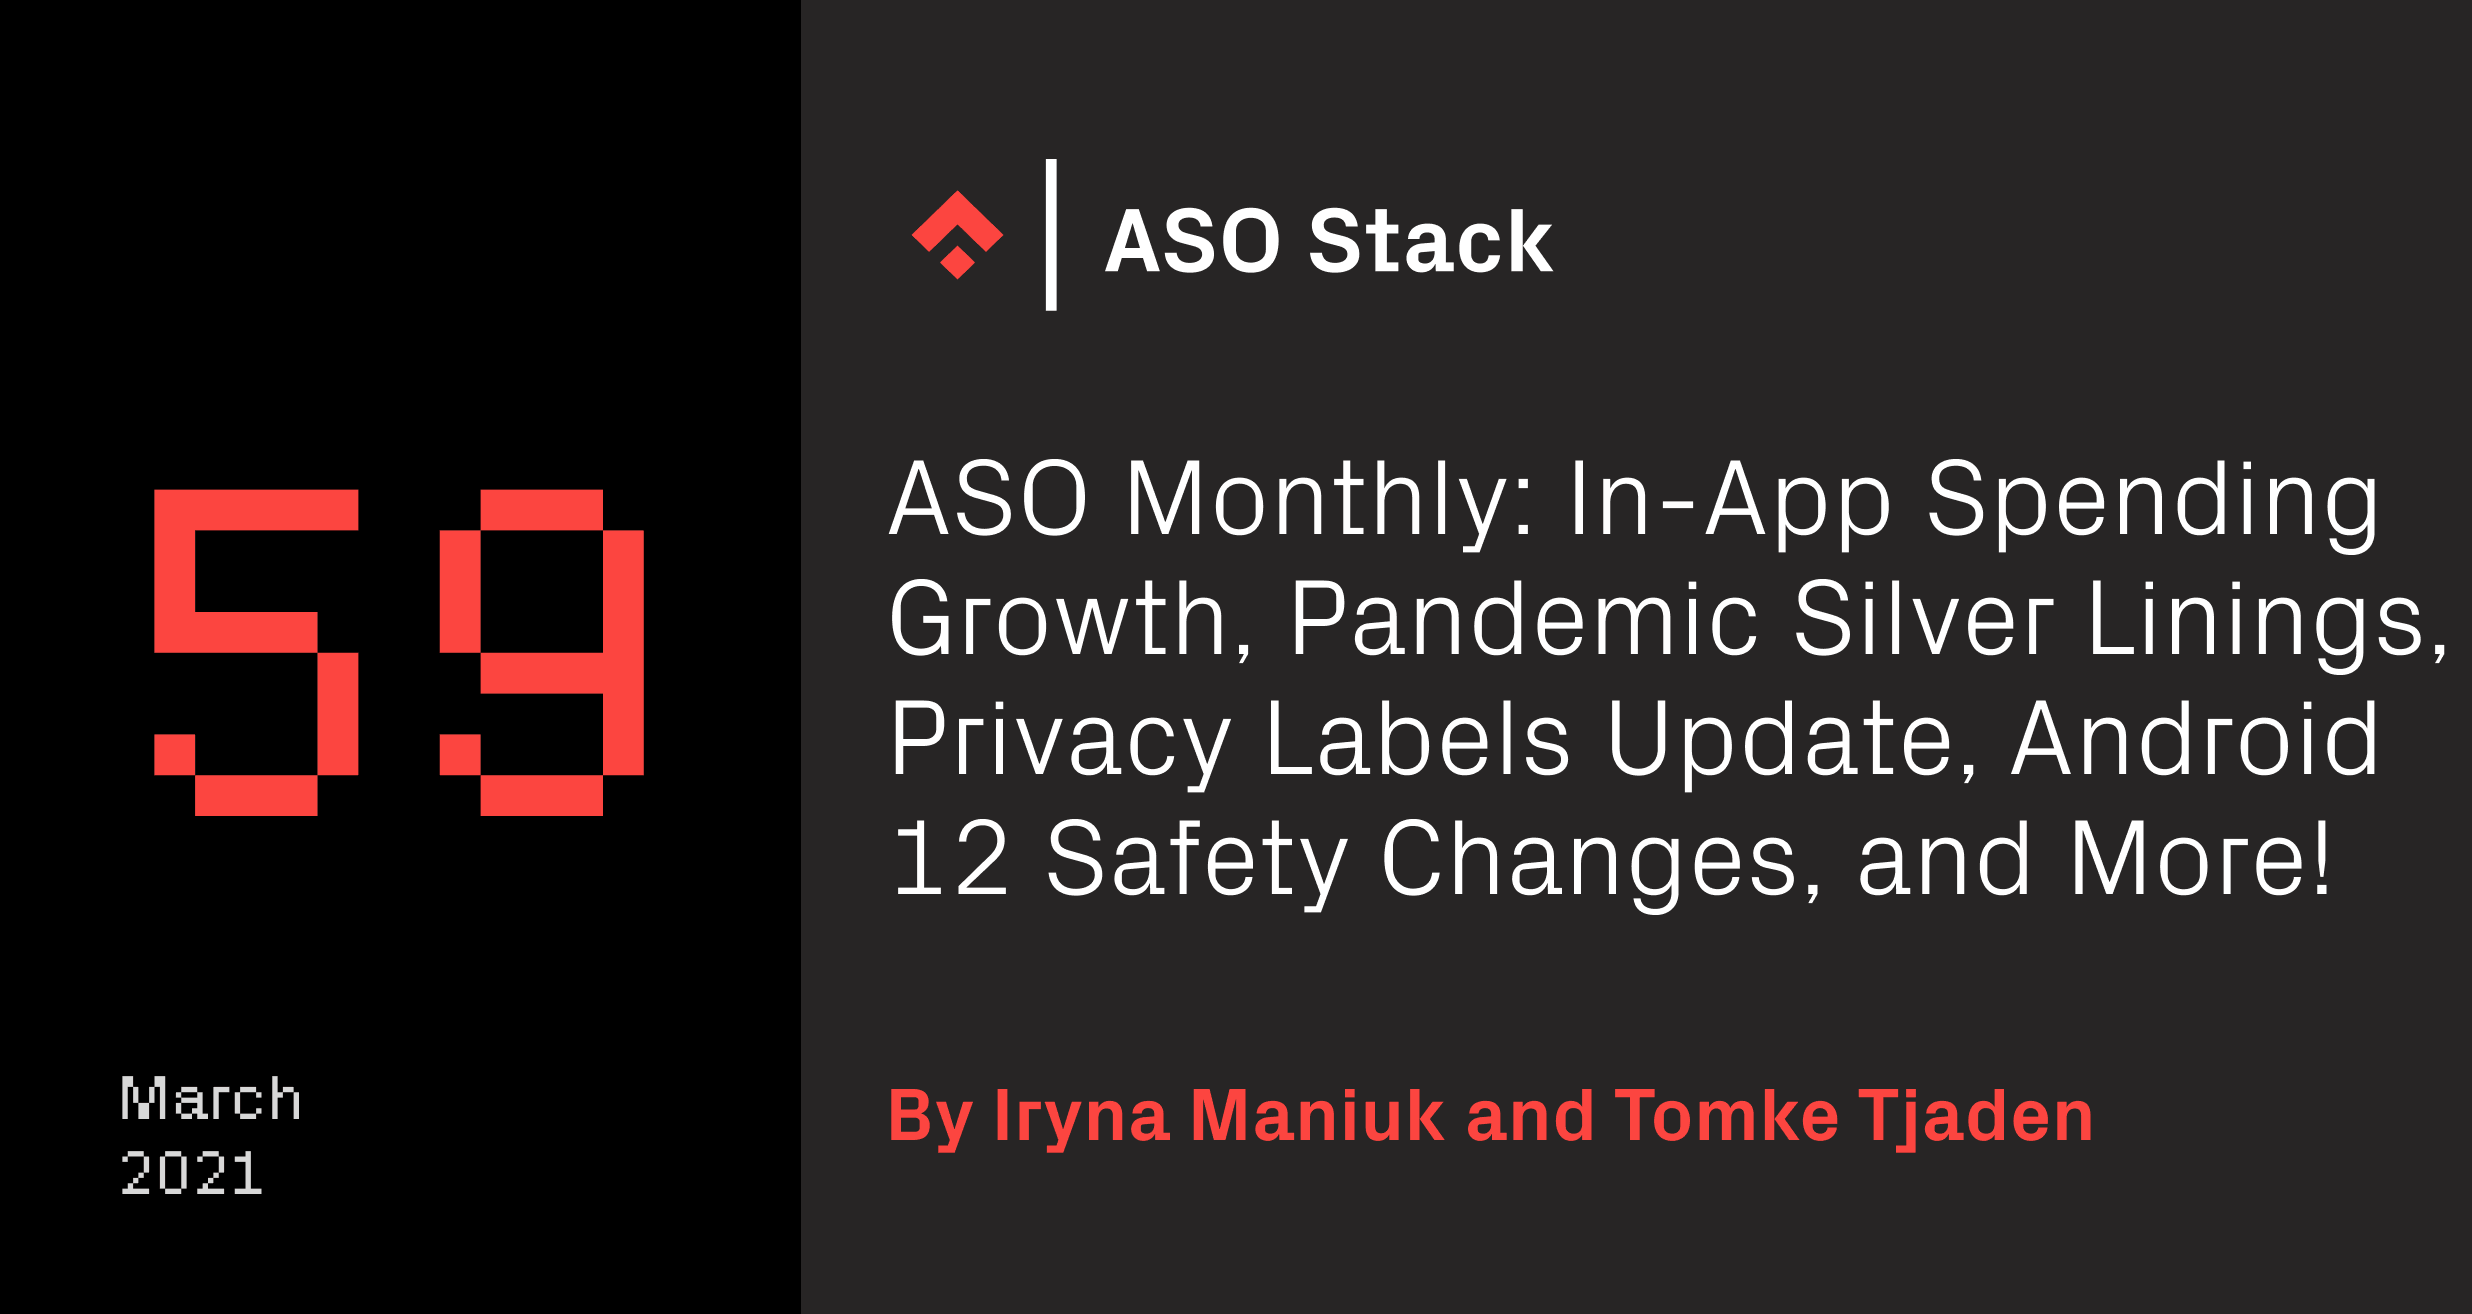 ASO Monthly #59 March 2021: In-App Spending Growth, Pandemic Silver Linings, Privacy Labels Update, Android 12 Safety Changes, and More!